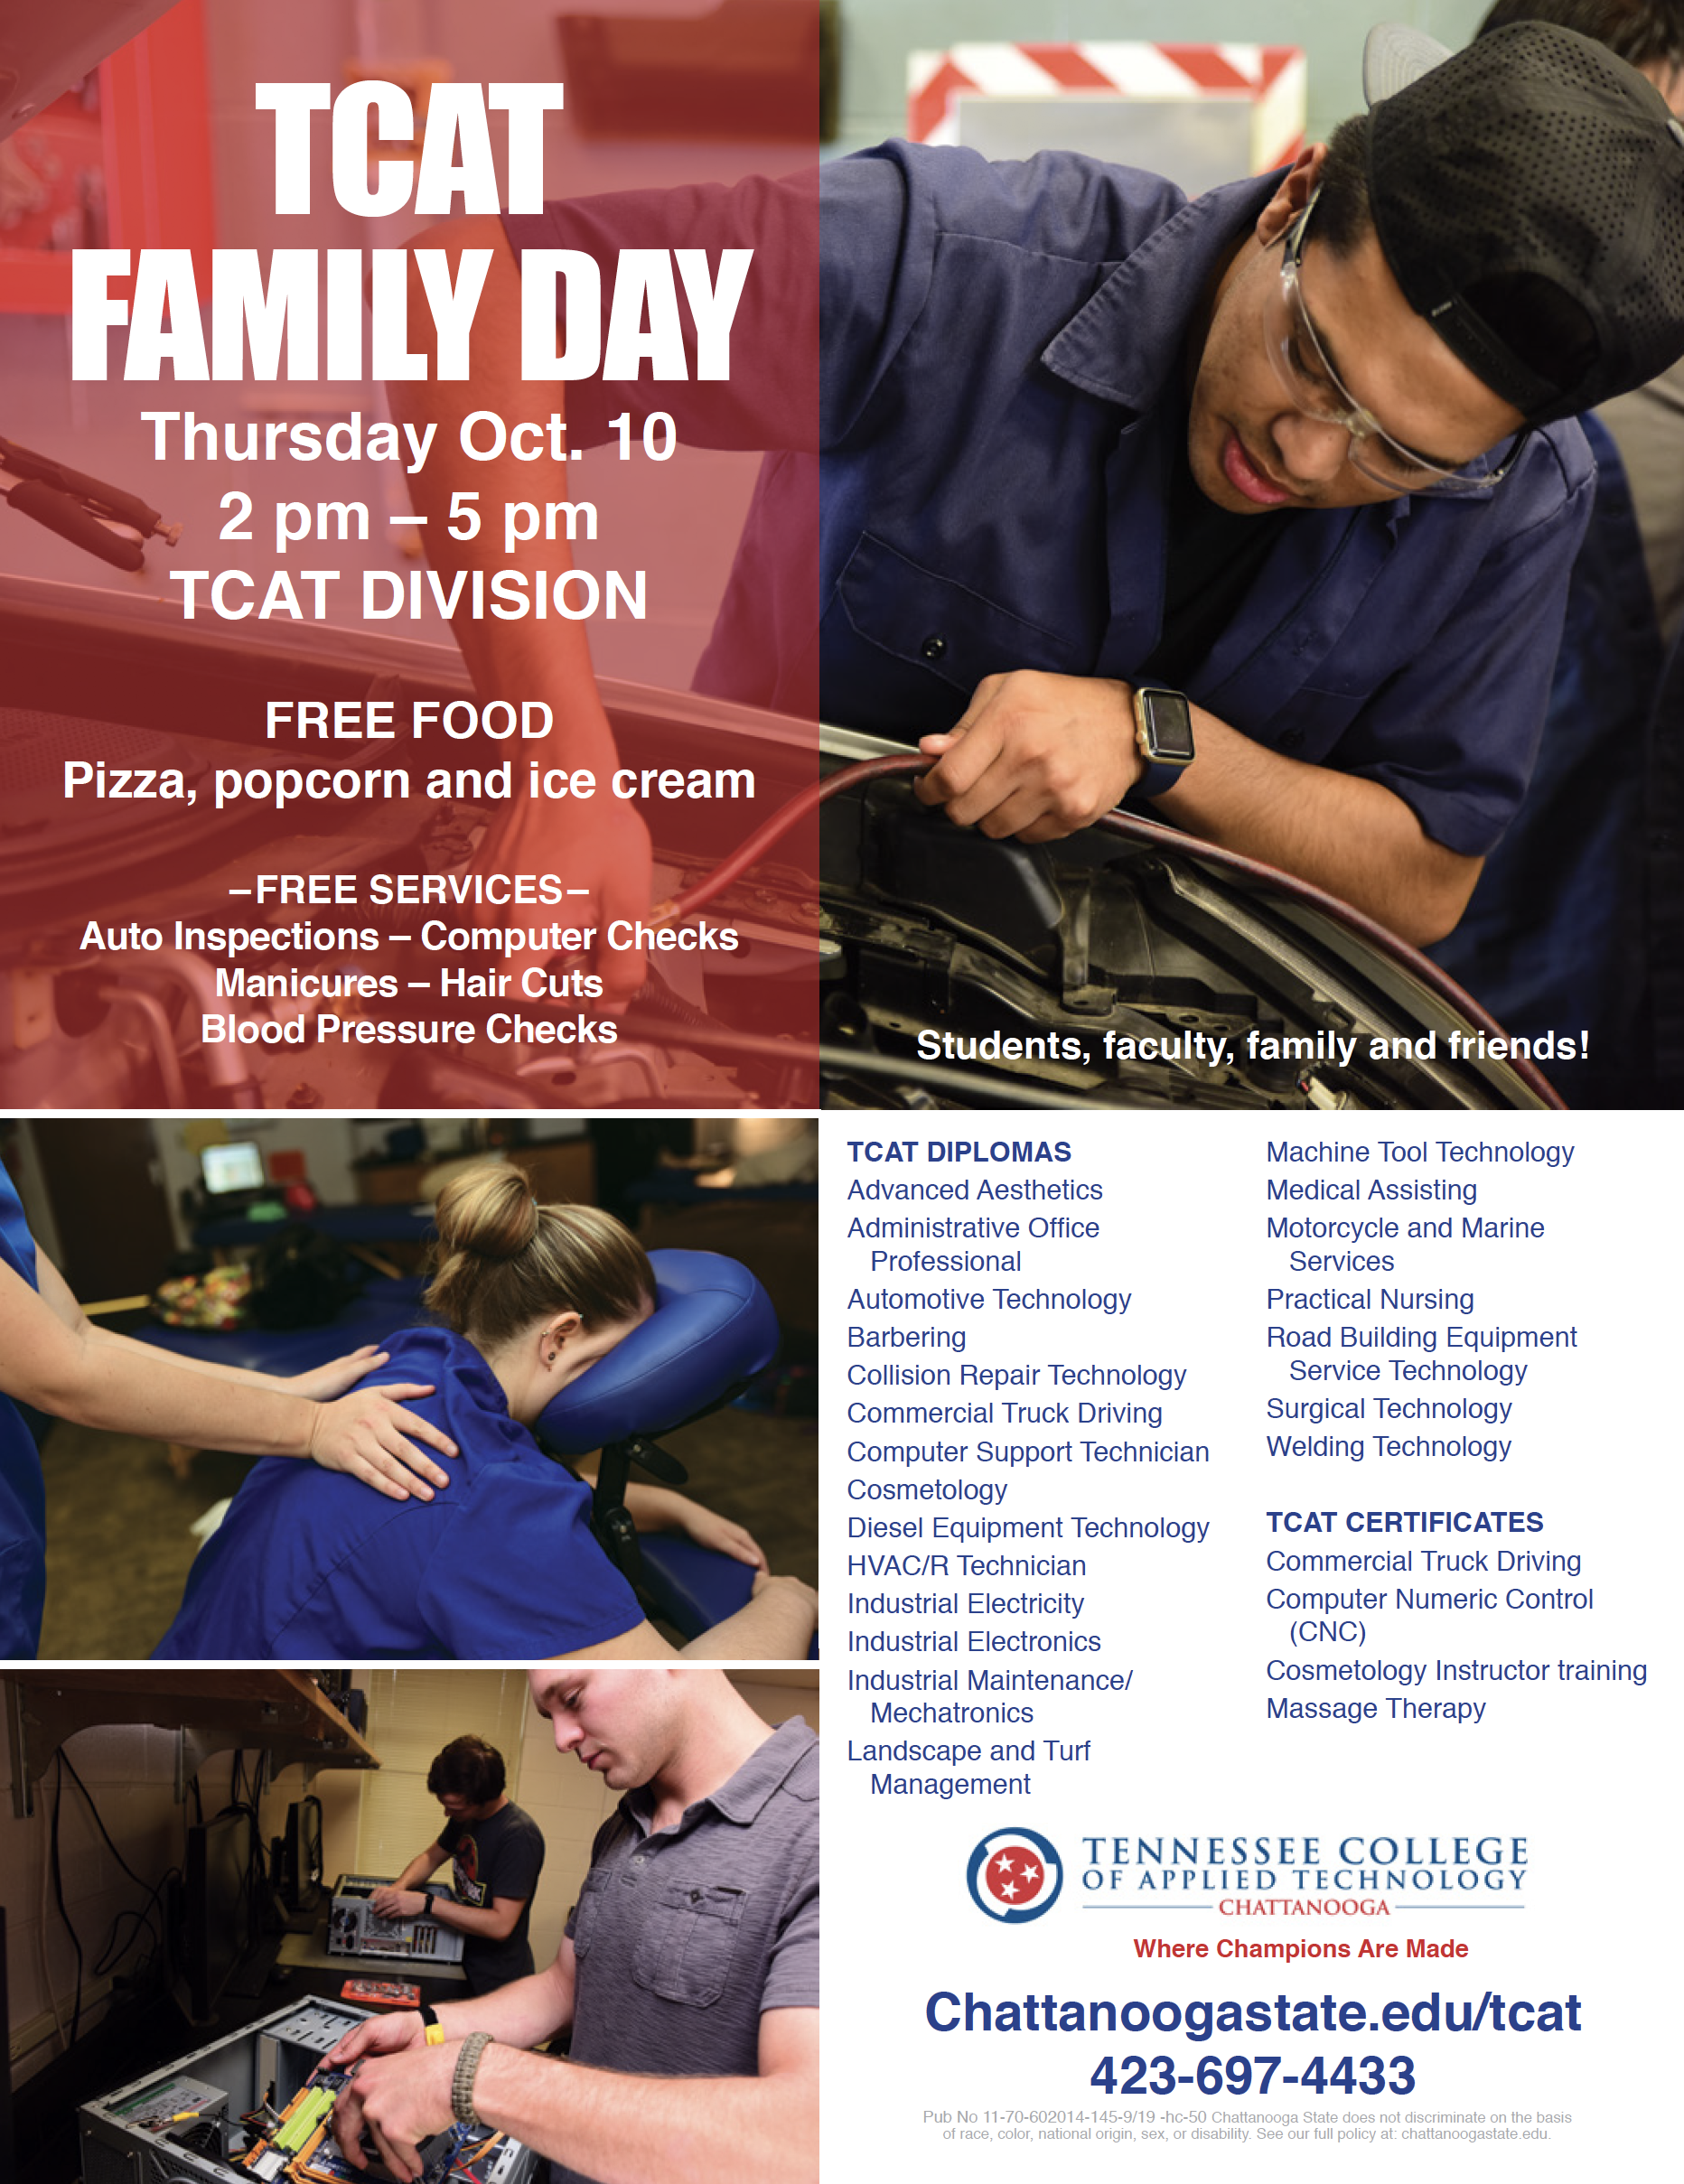 TCAT Family Day flyer